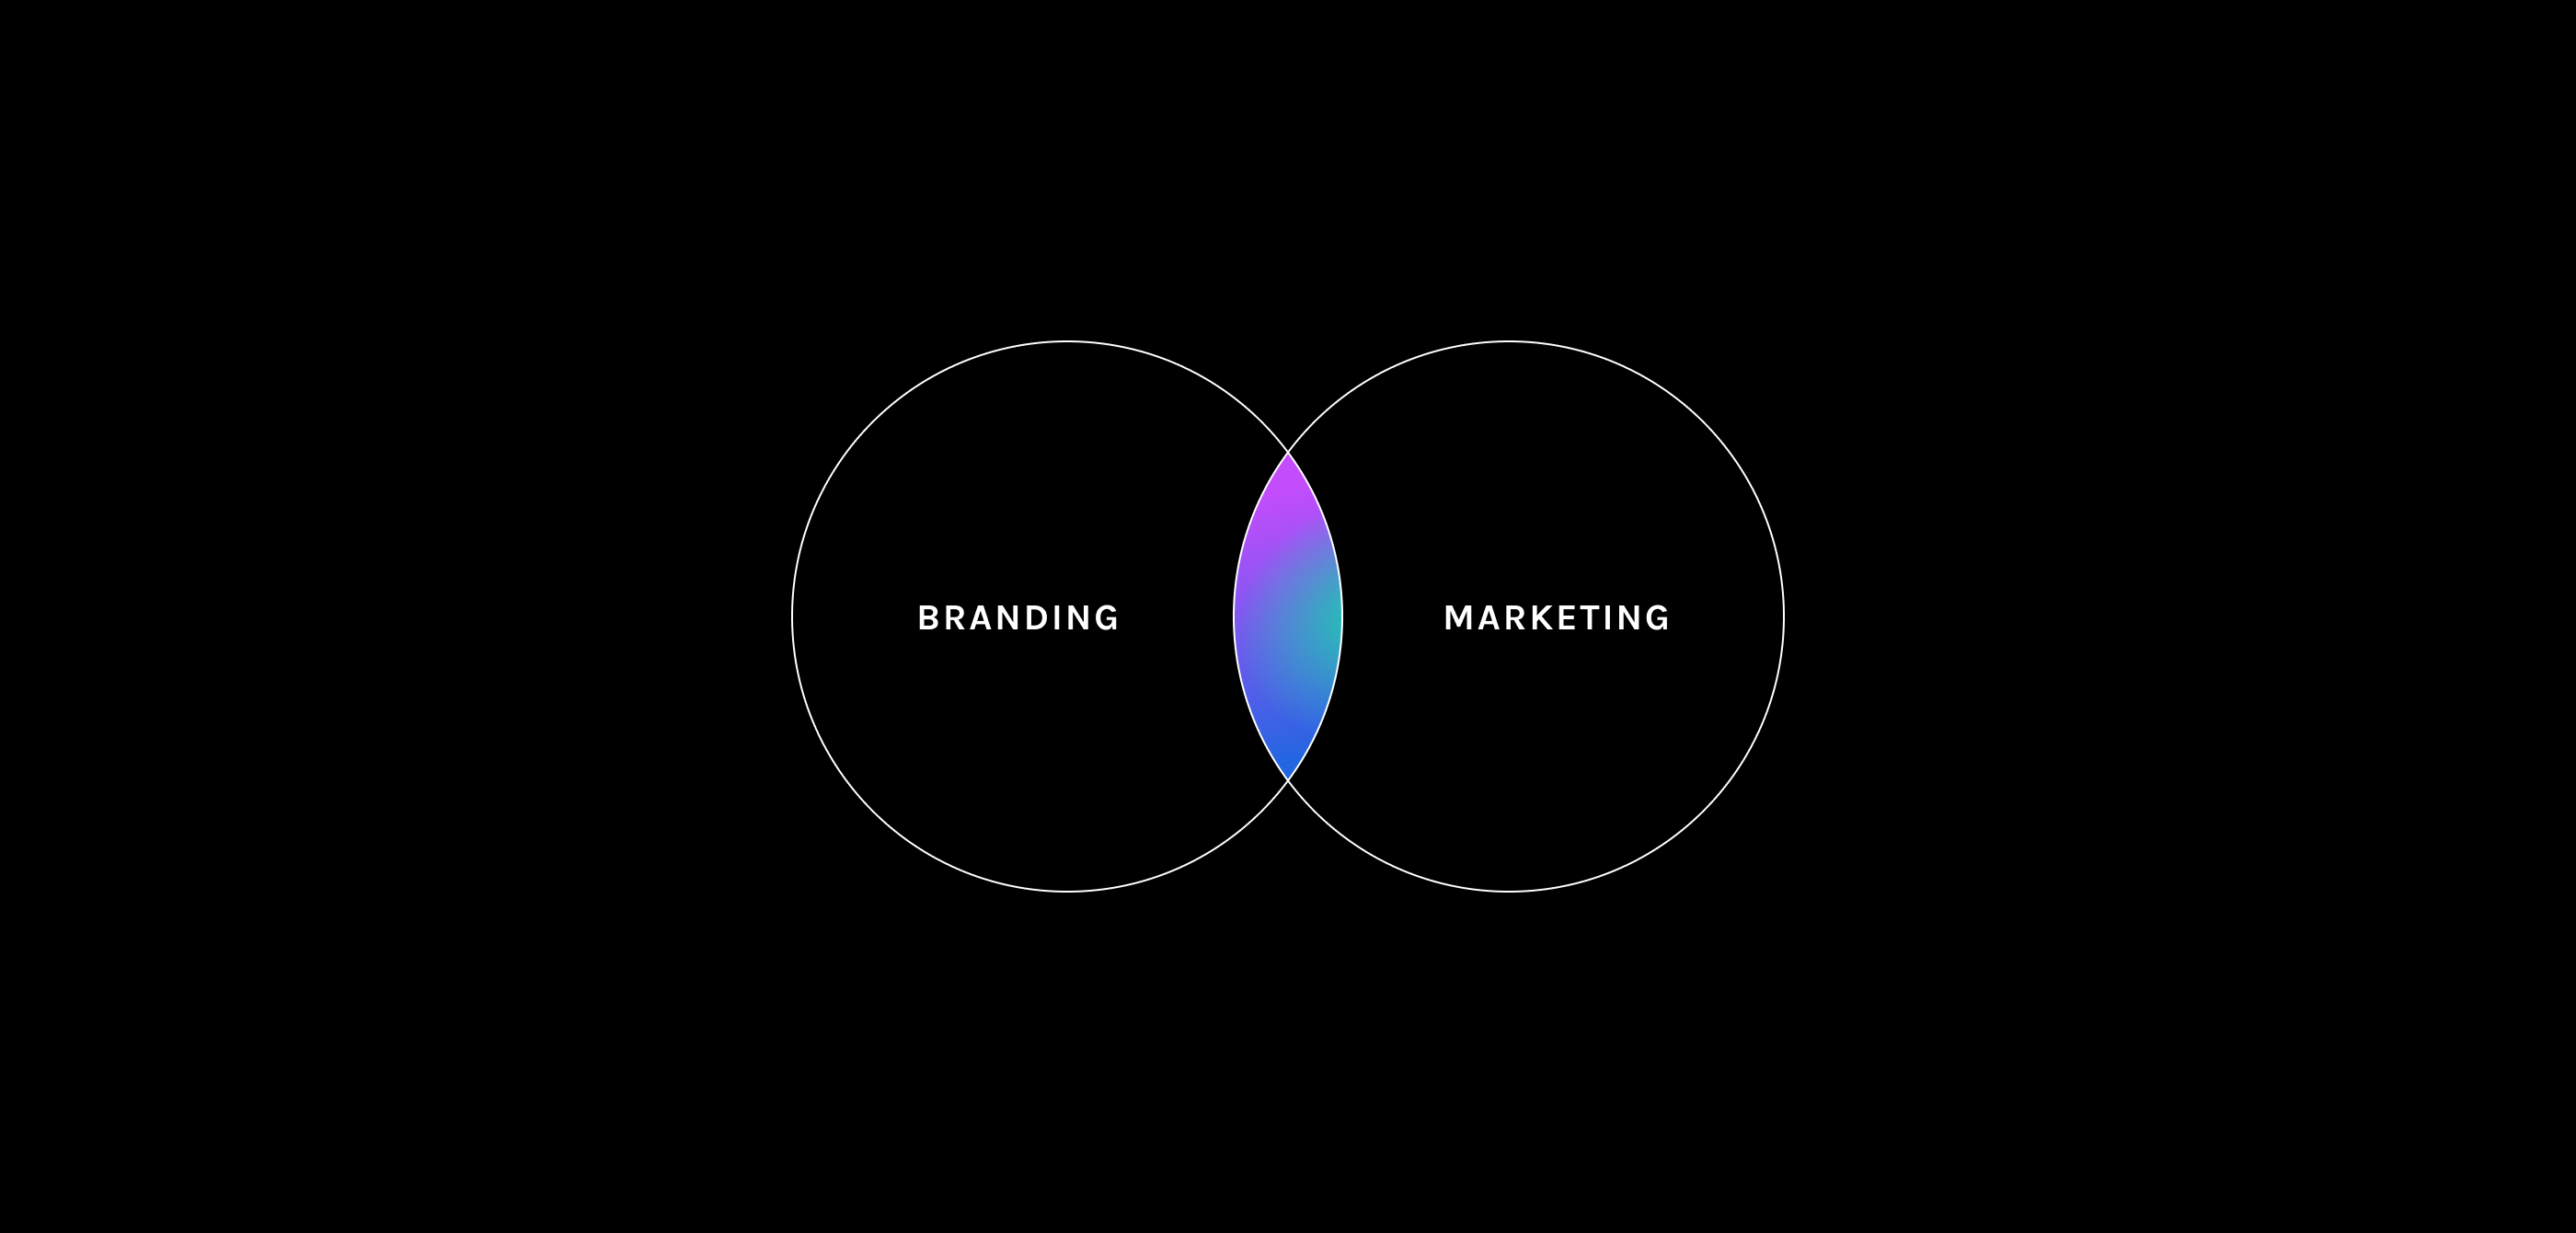 What's the Difference Between Branding and Marketing